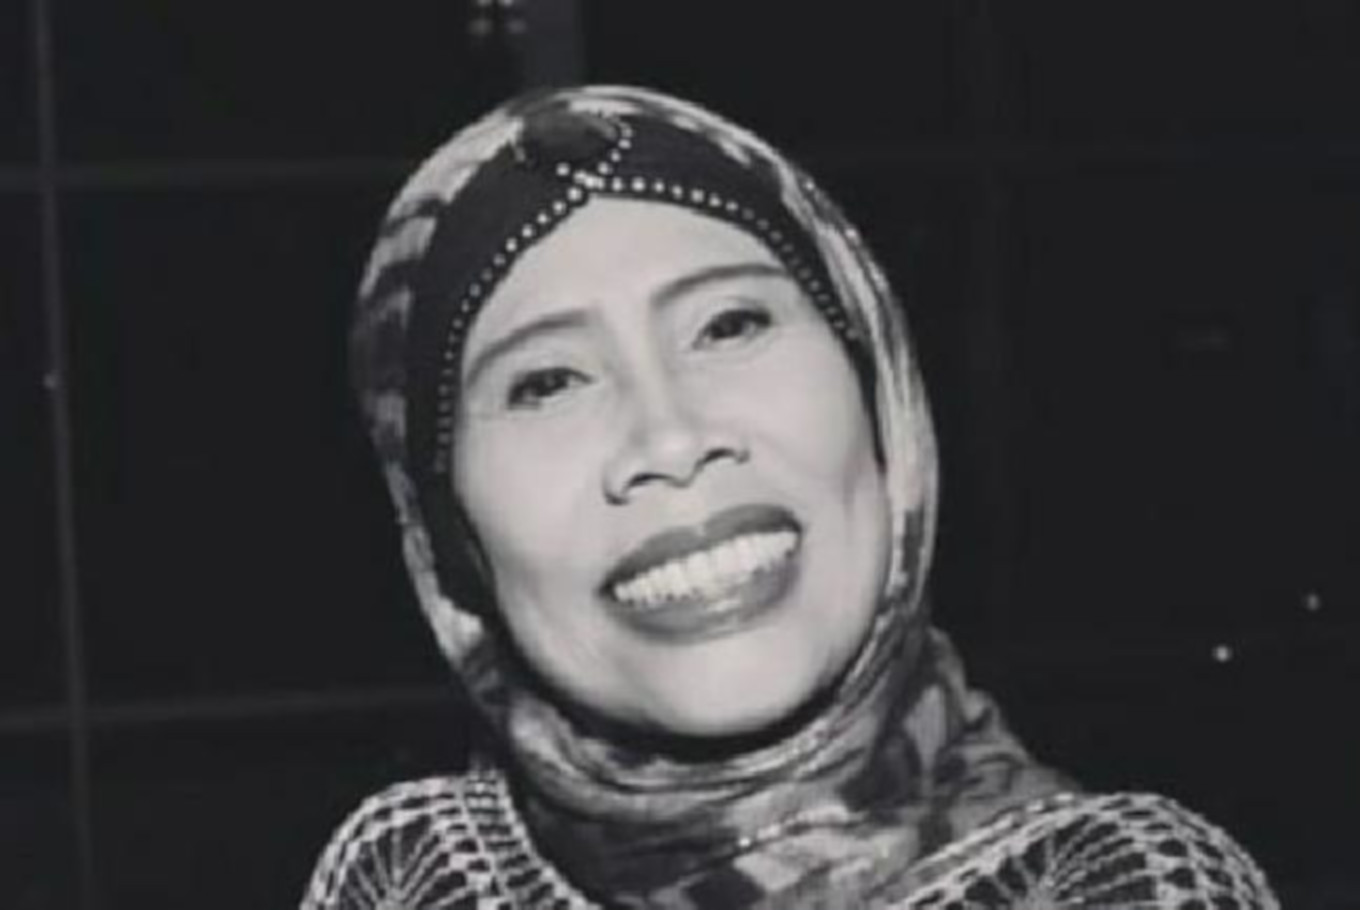 Renowned Betawi comedienne Omas passes away at 54